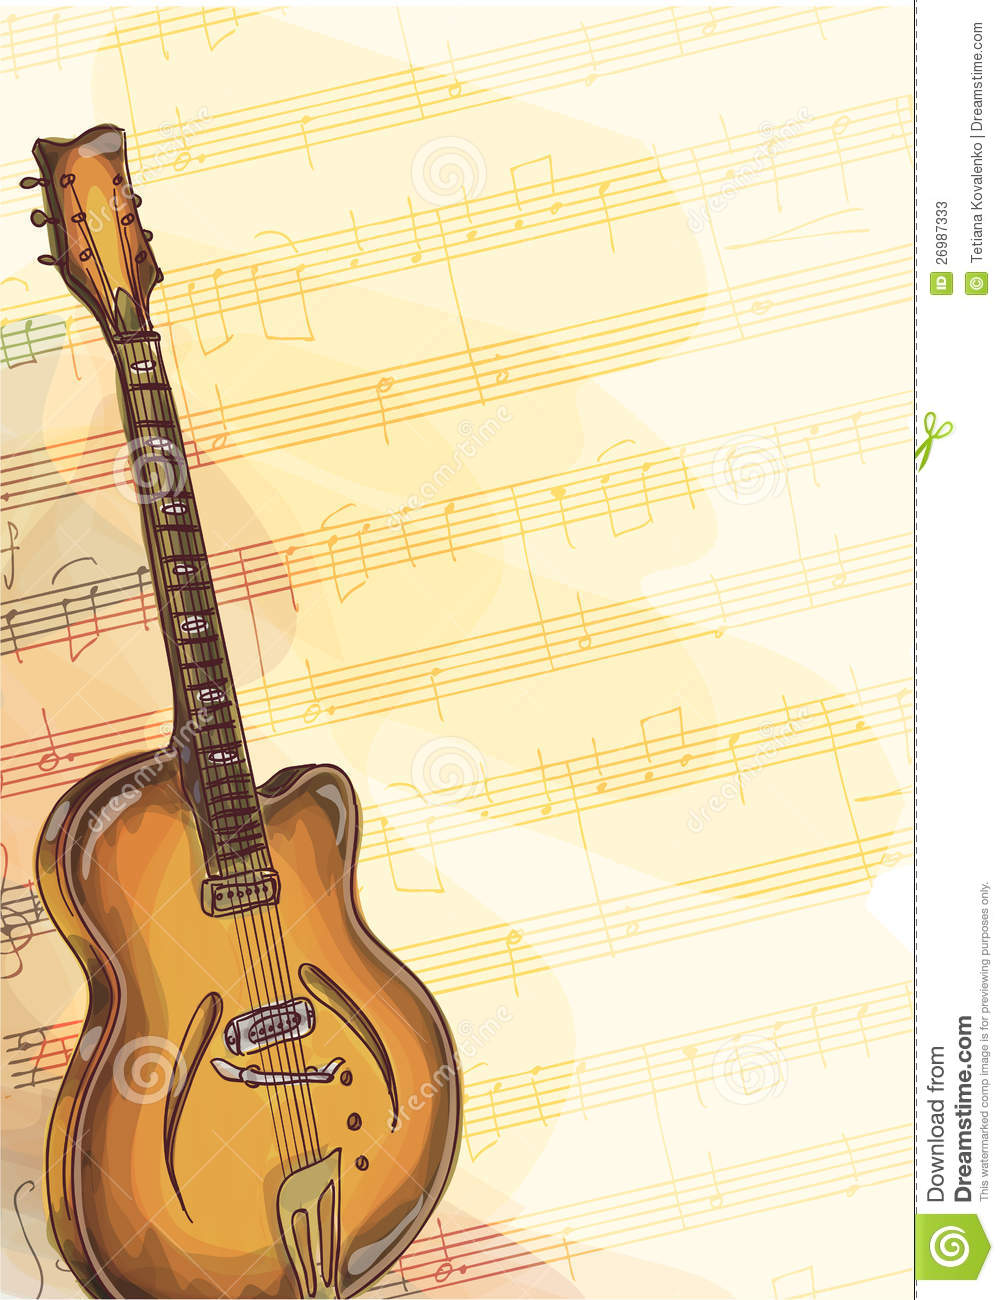 bass guitar on background with handmade notes  stock